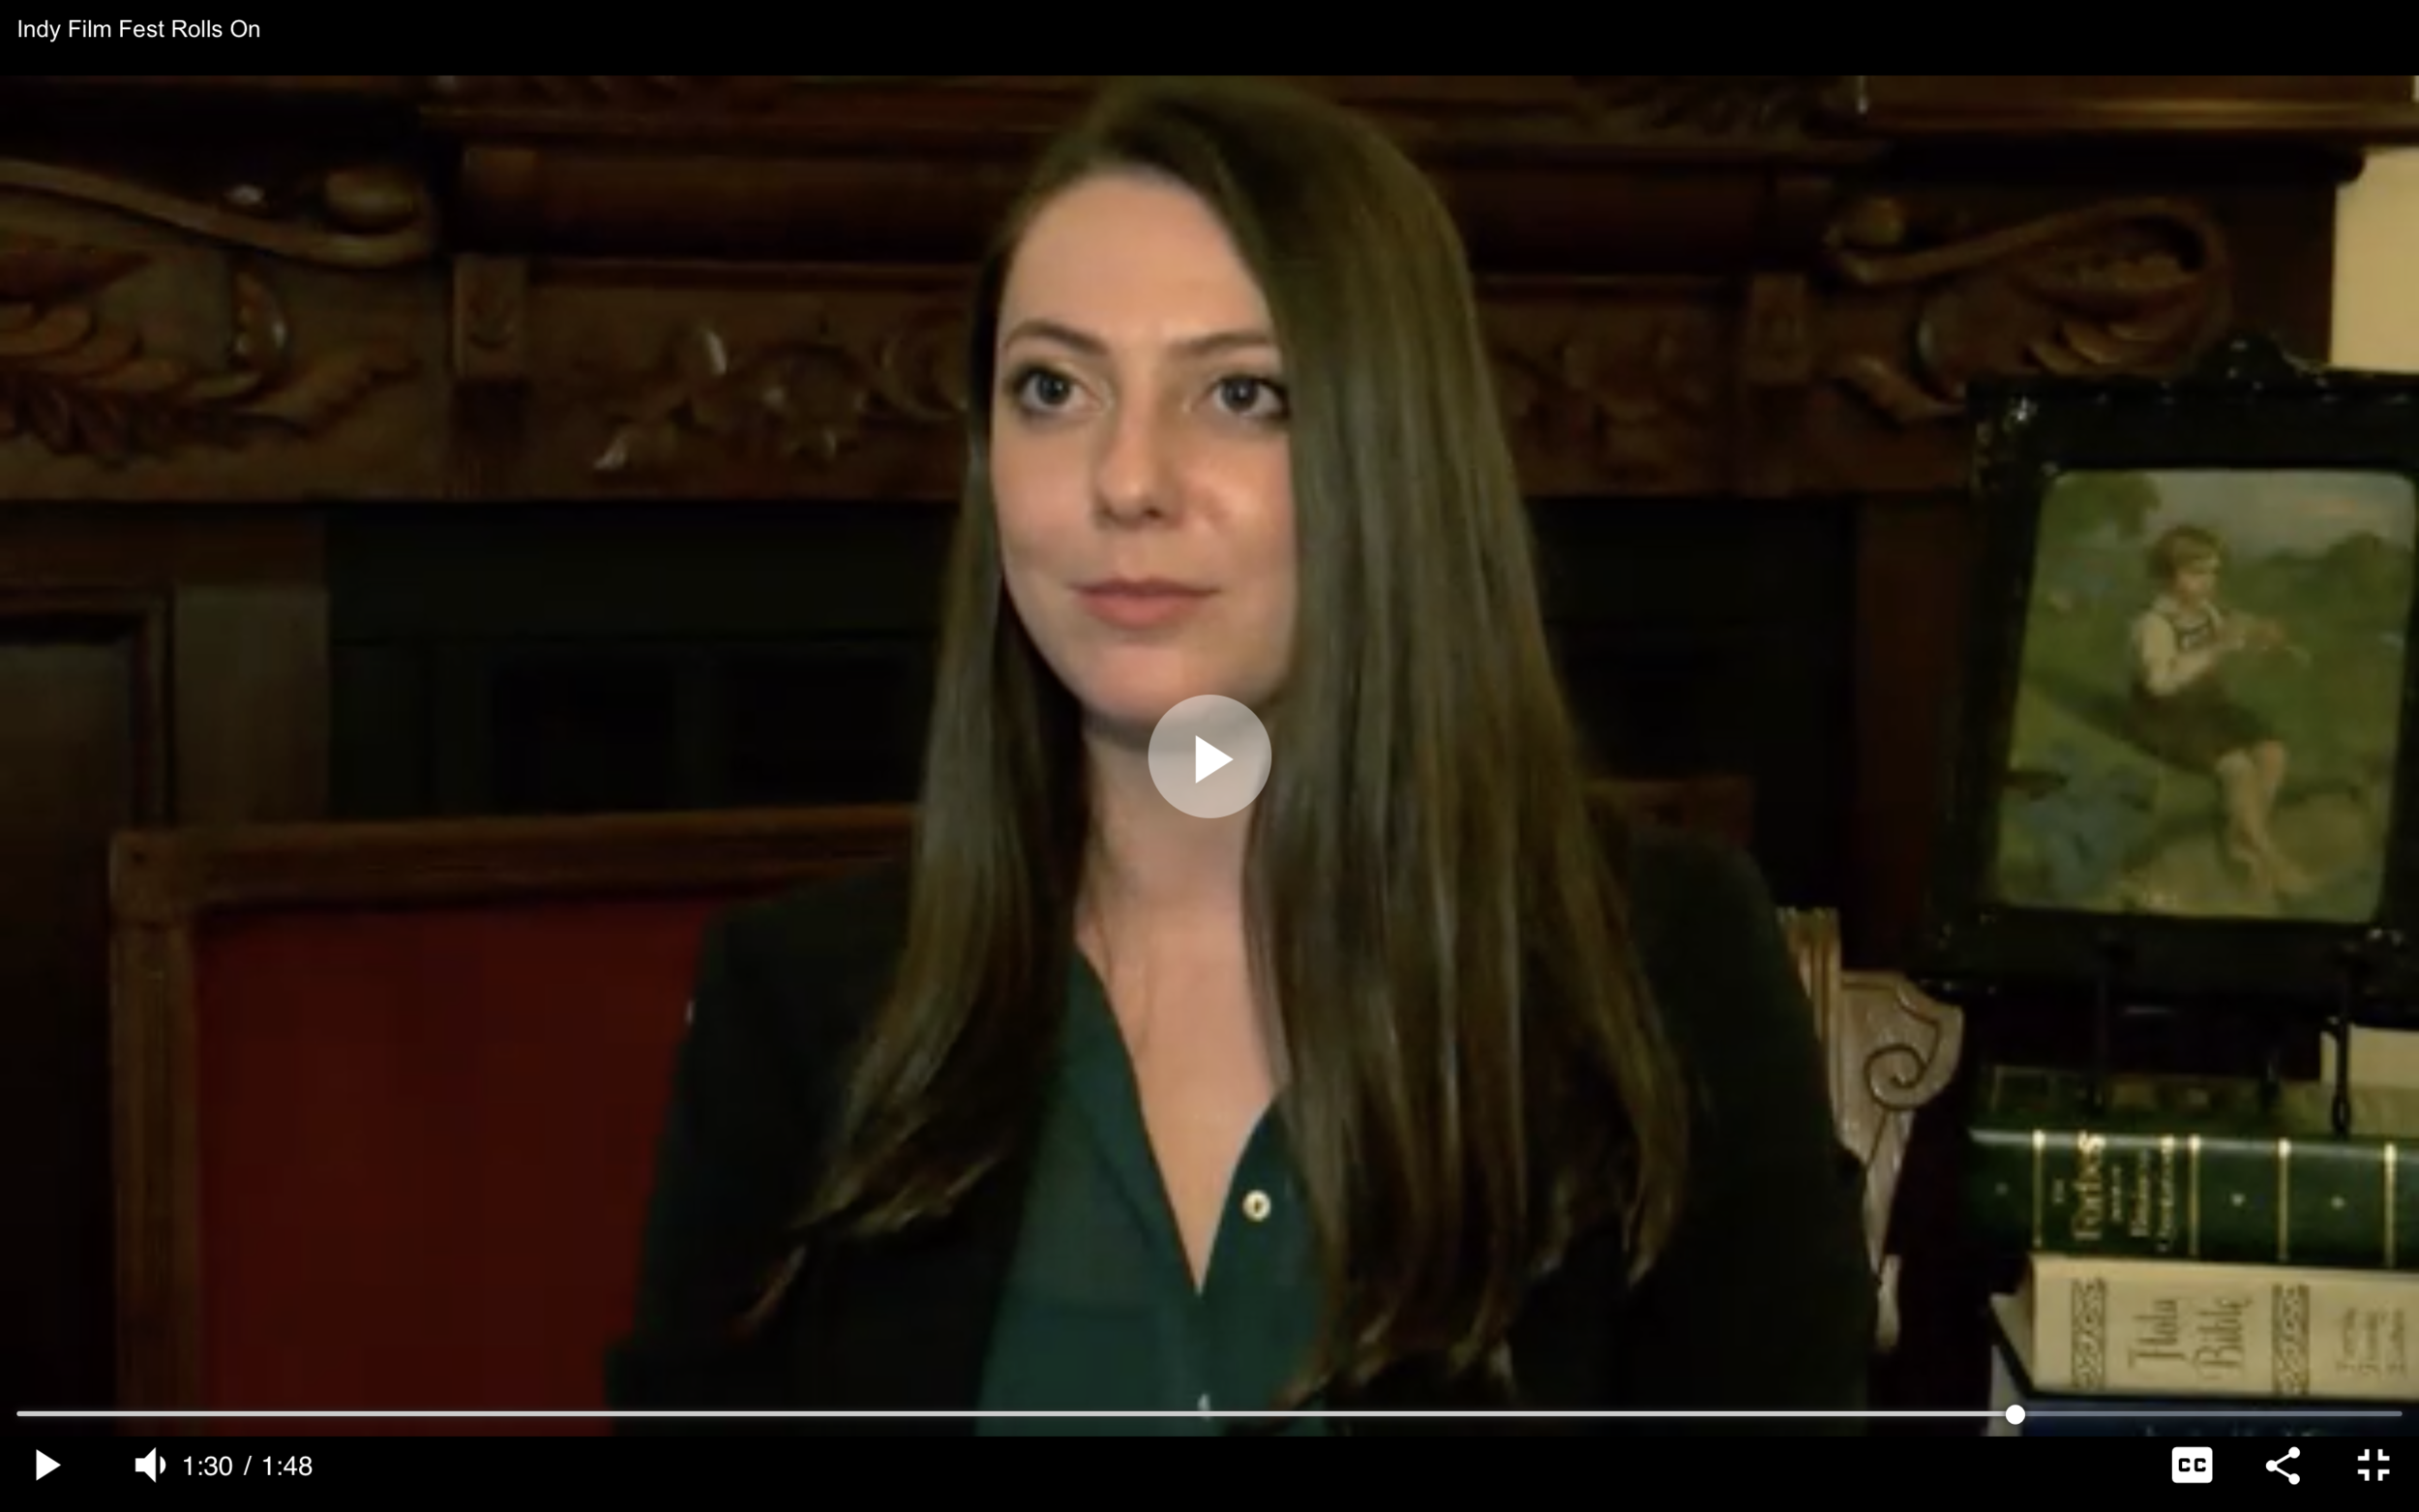 'Indy Film Fest Rolls On' by Mary Rachel Redman, Inside Indiana Business - Watch the Interview with Grace Hannoy!